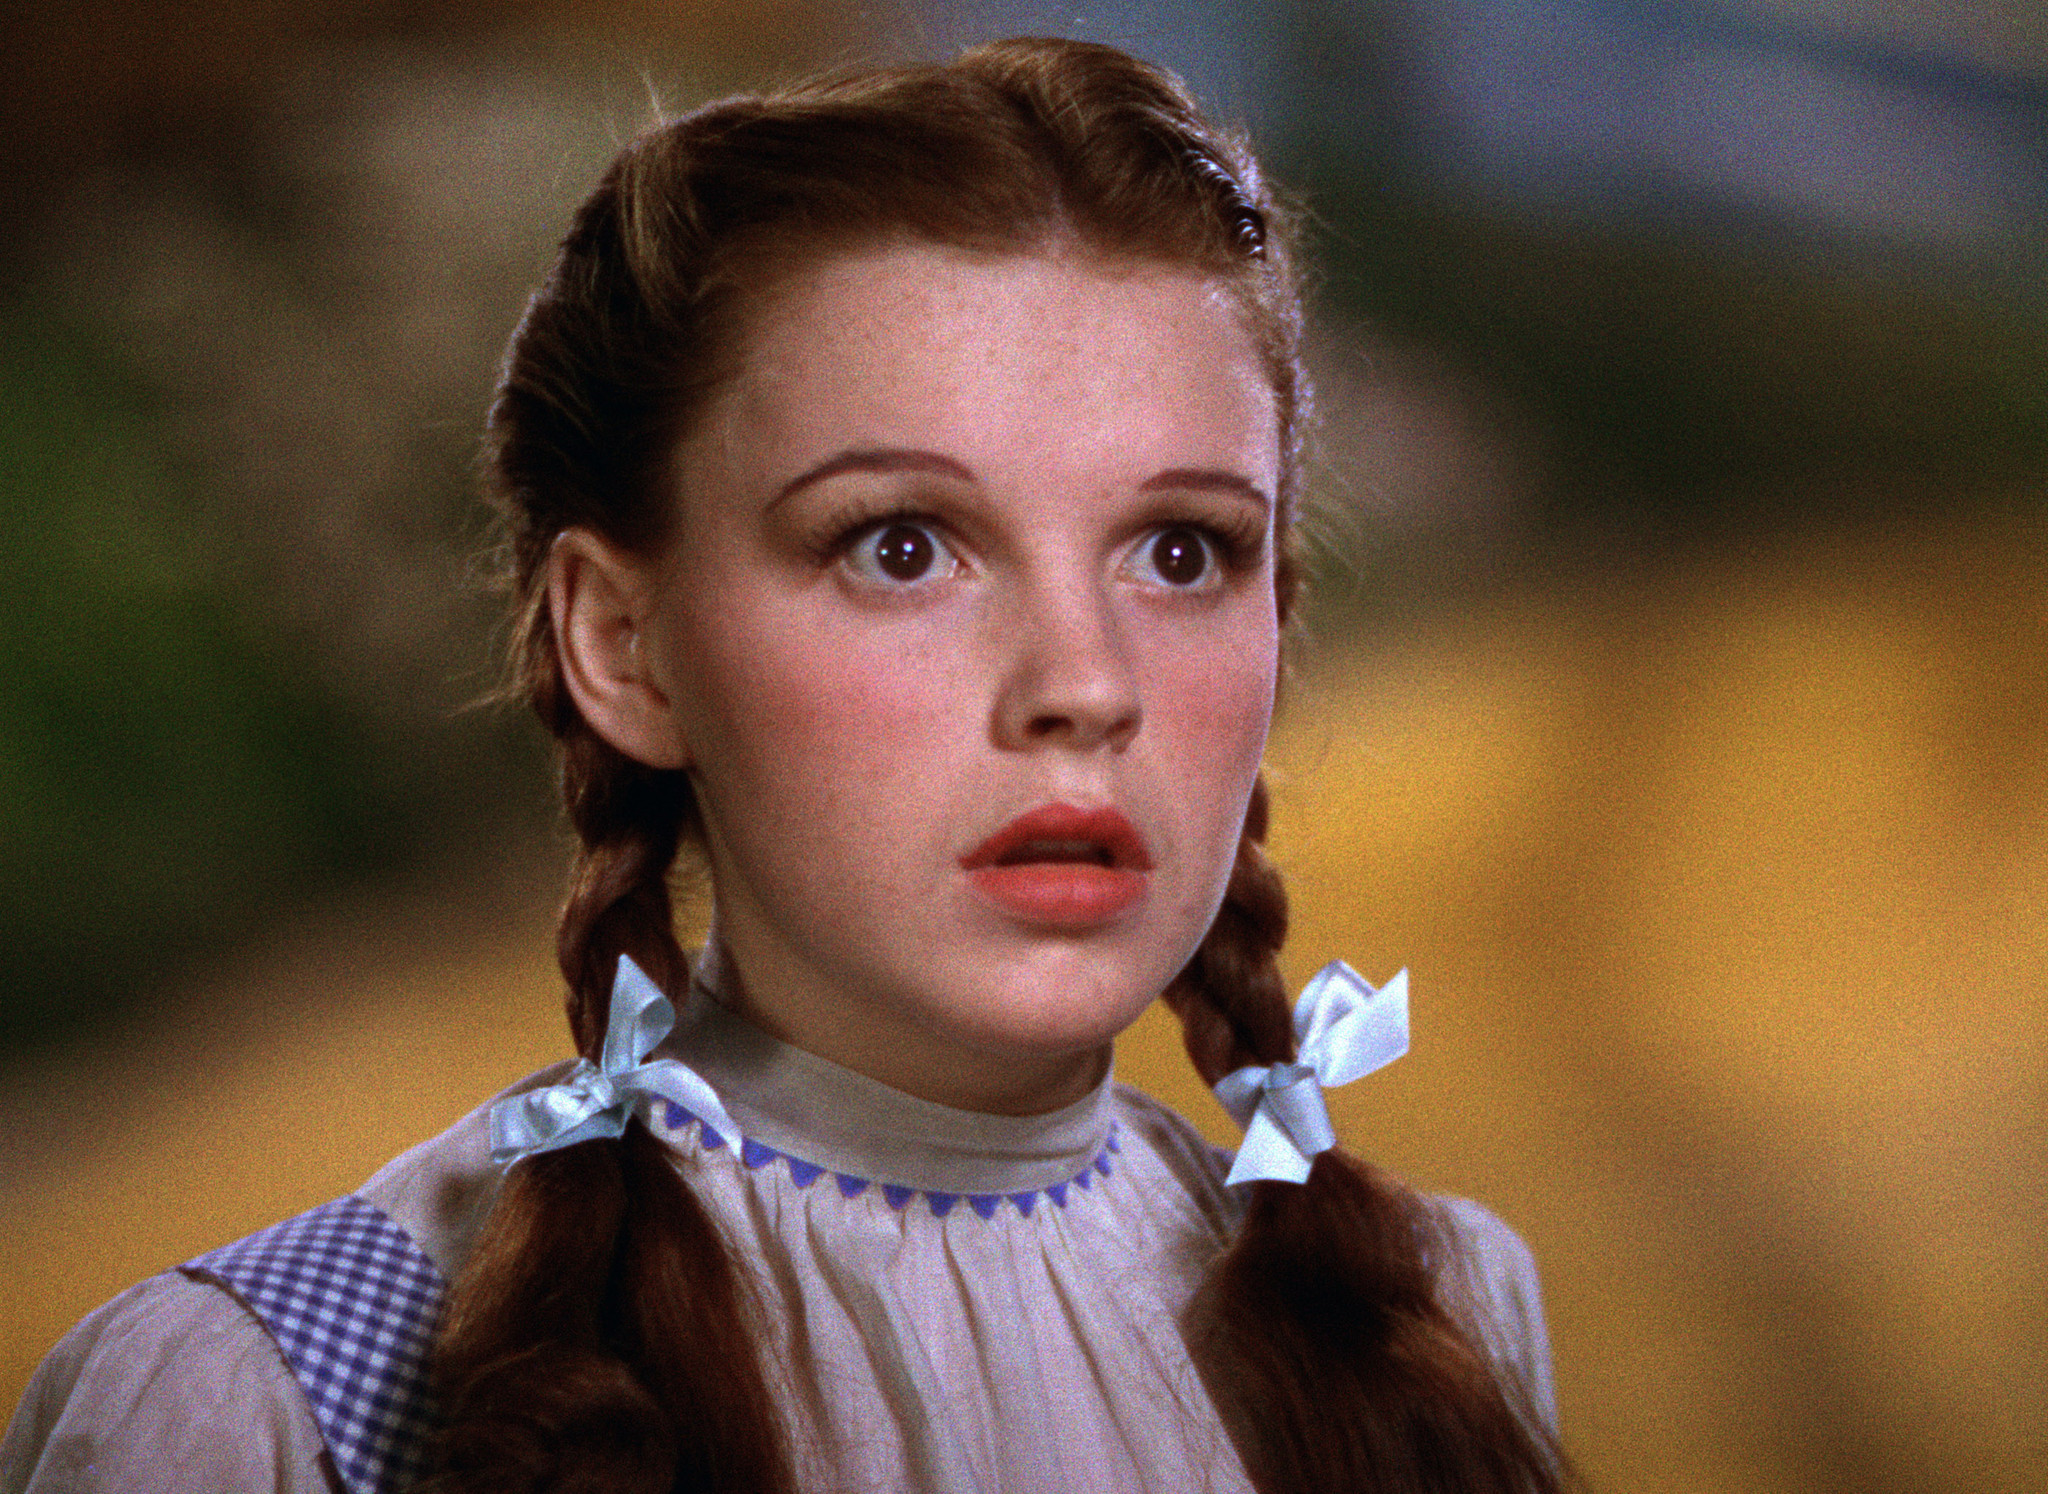 Judy Garland as Dorothy in The Wizard of Oz HD Wallpaper 2048x1494